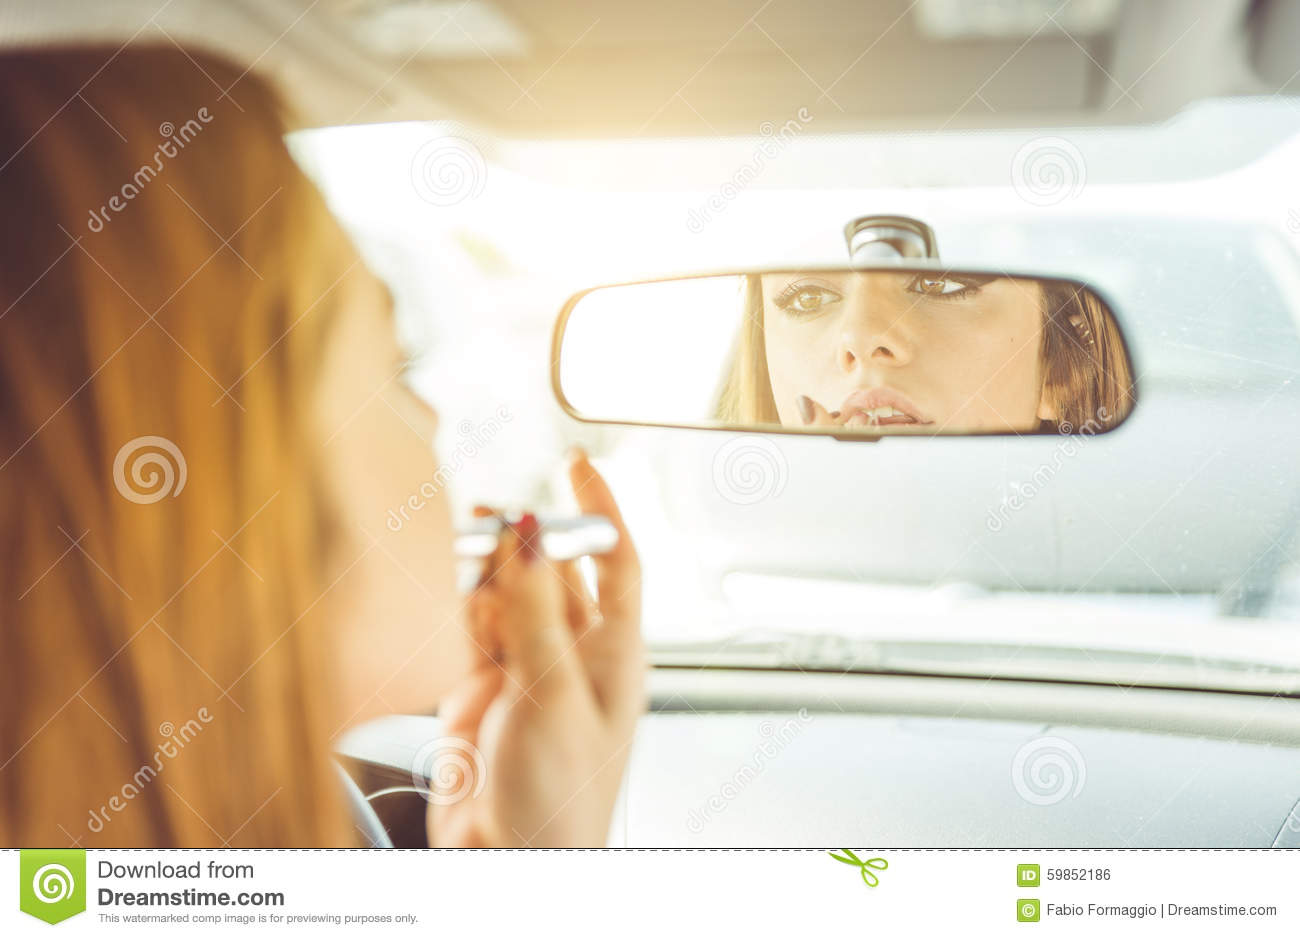 Woman putting lipstick in the car.